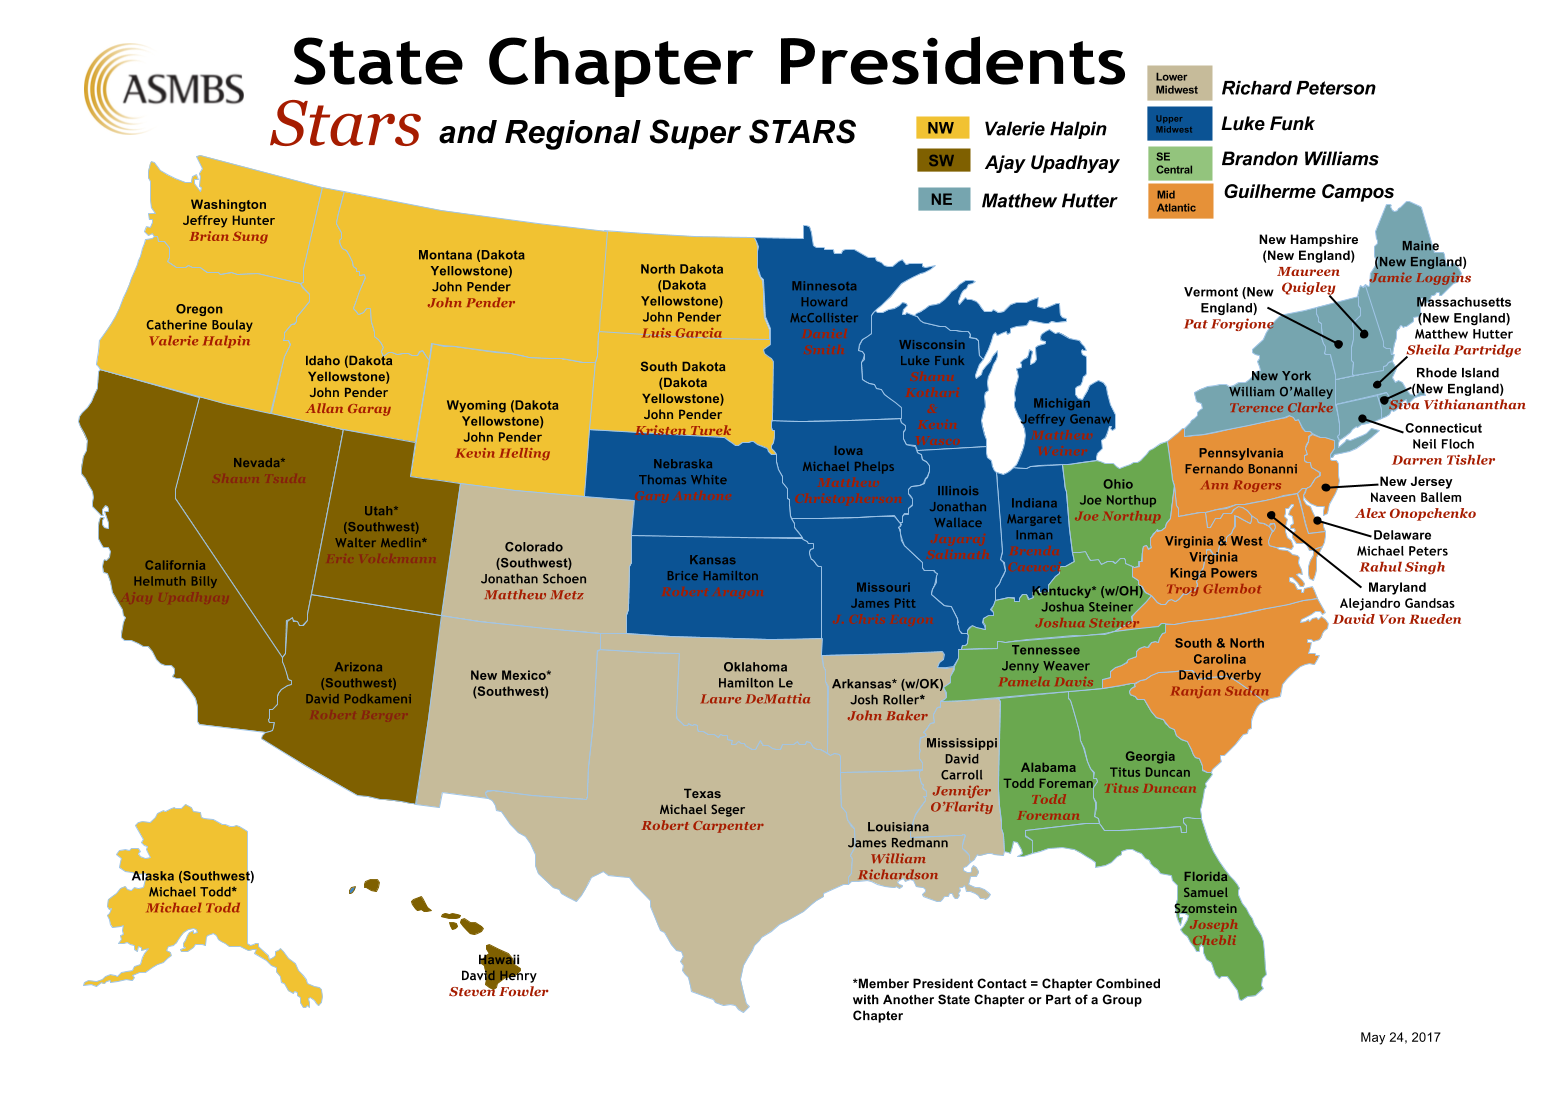 State-Chapter-President-and-Star-Map-052417.png""